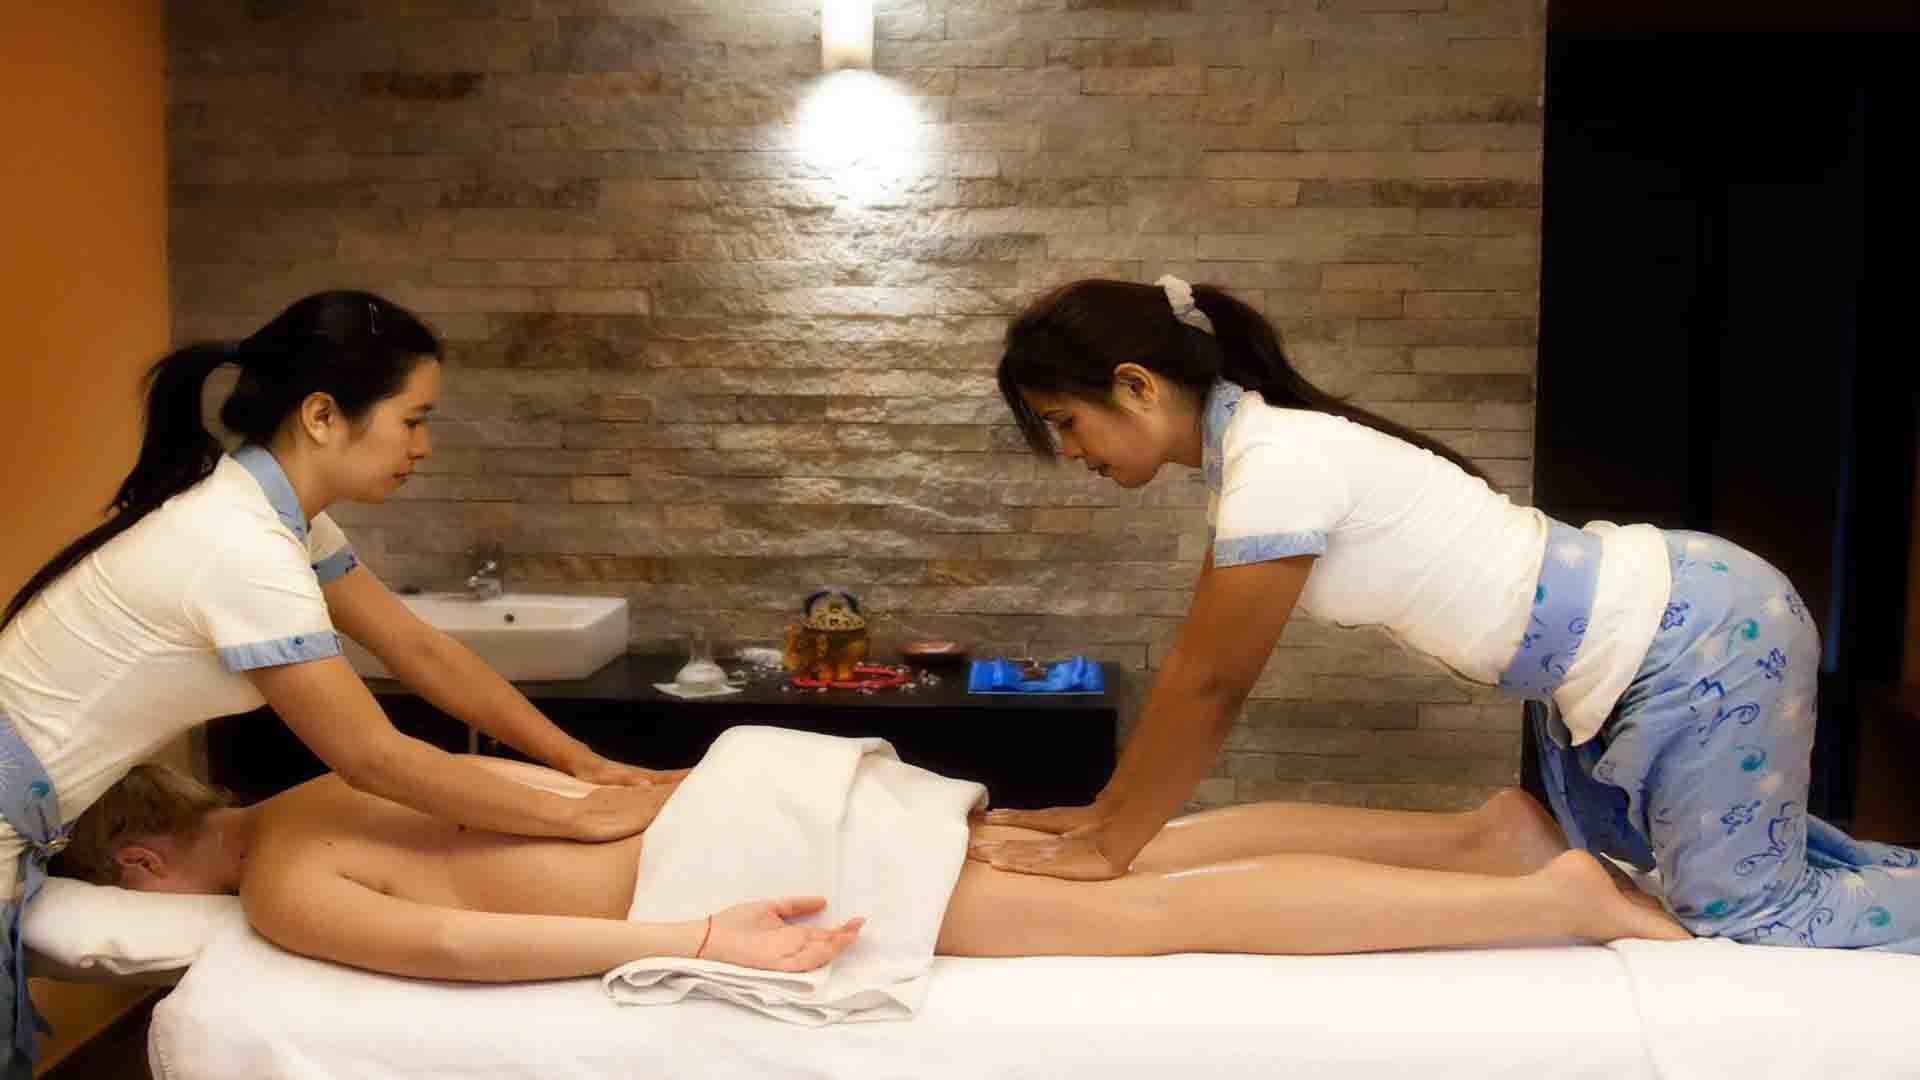 Massage center with happy ending